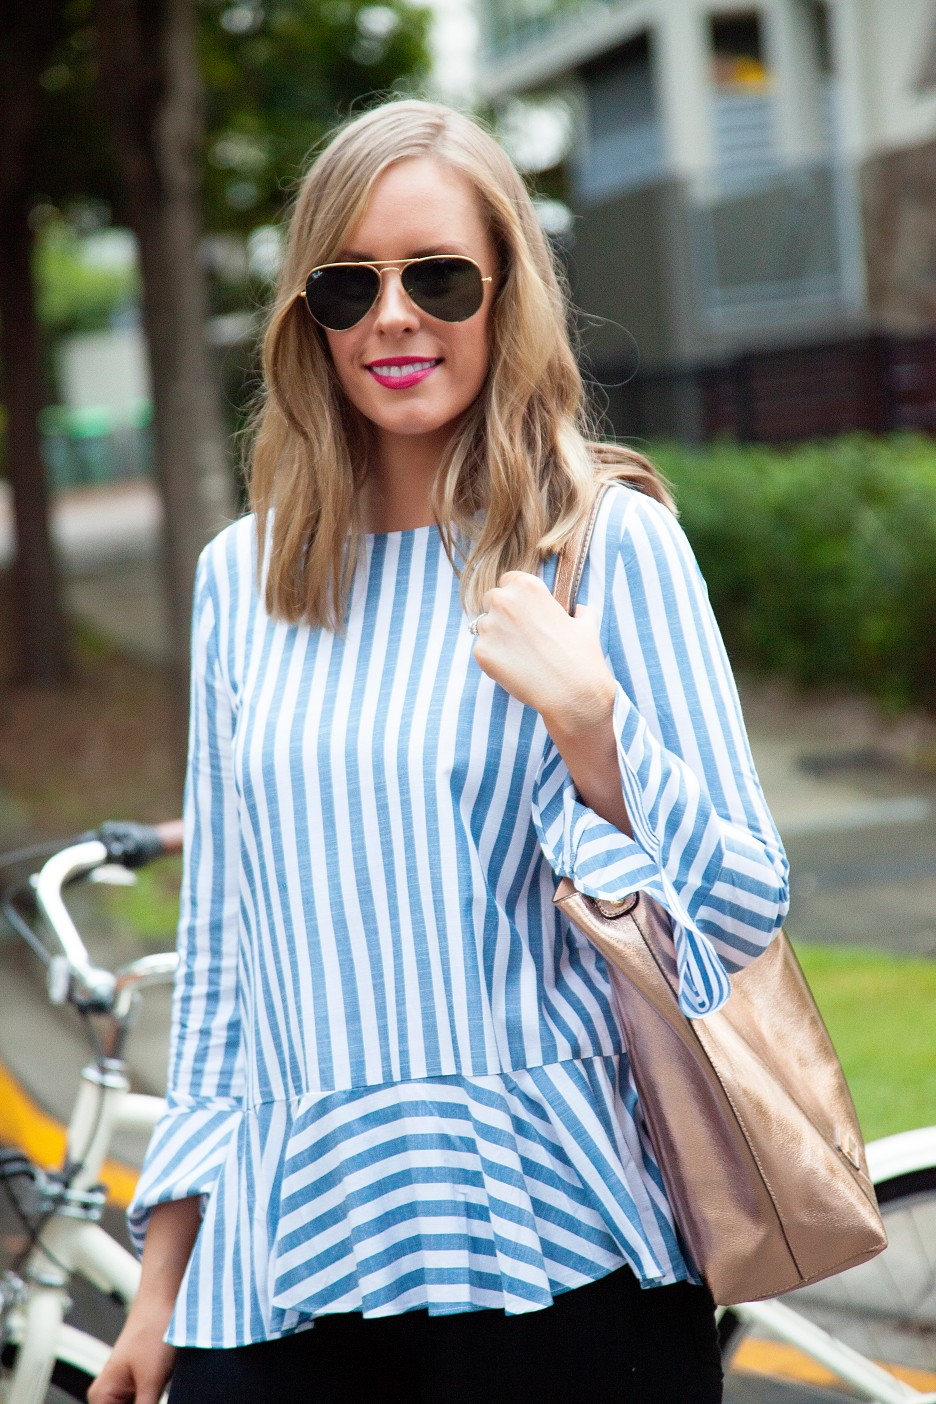 9 Stripe Top Black Jeans and White Converse Sneakers fashion blogger electra bike with basket rose gold tote handbag